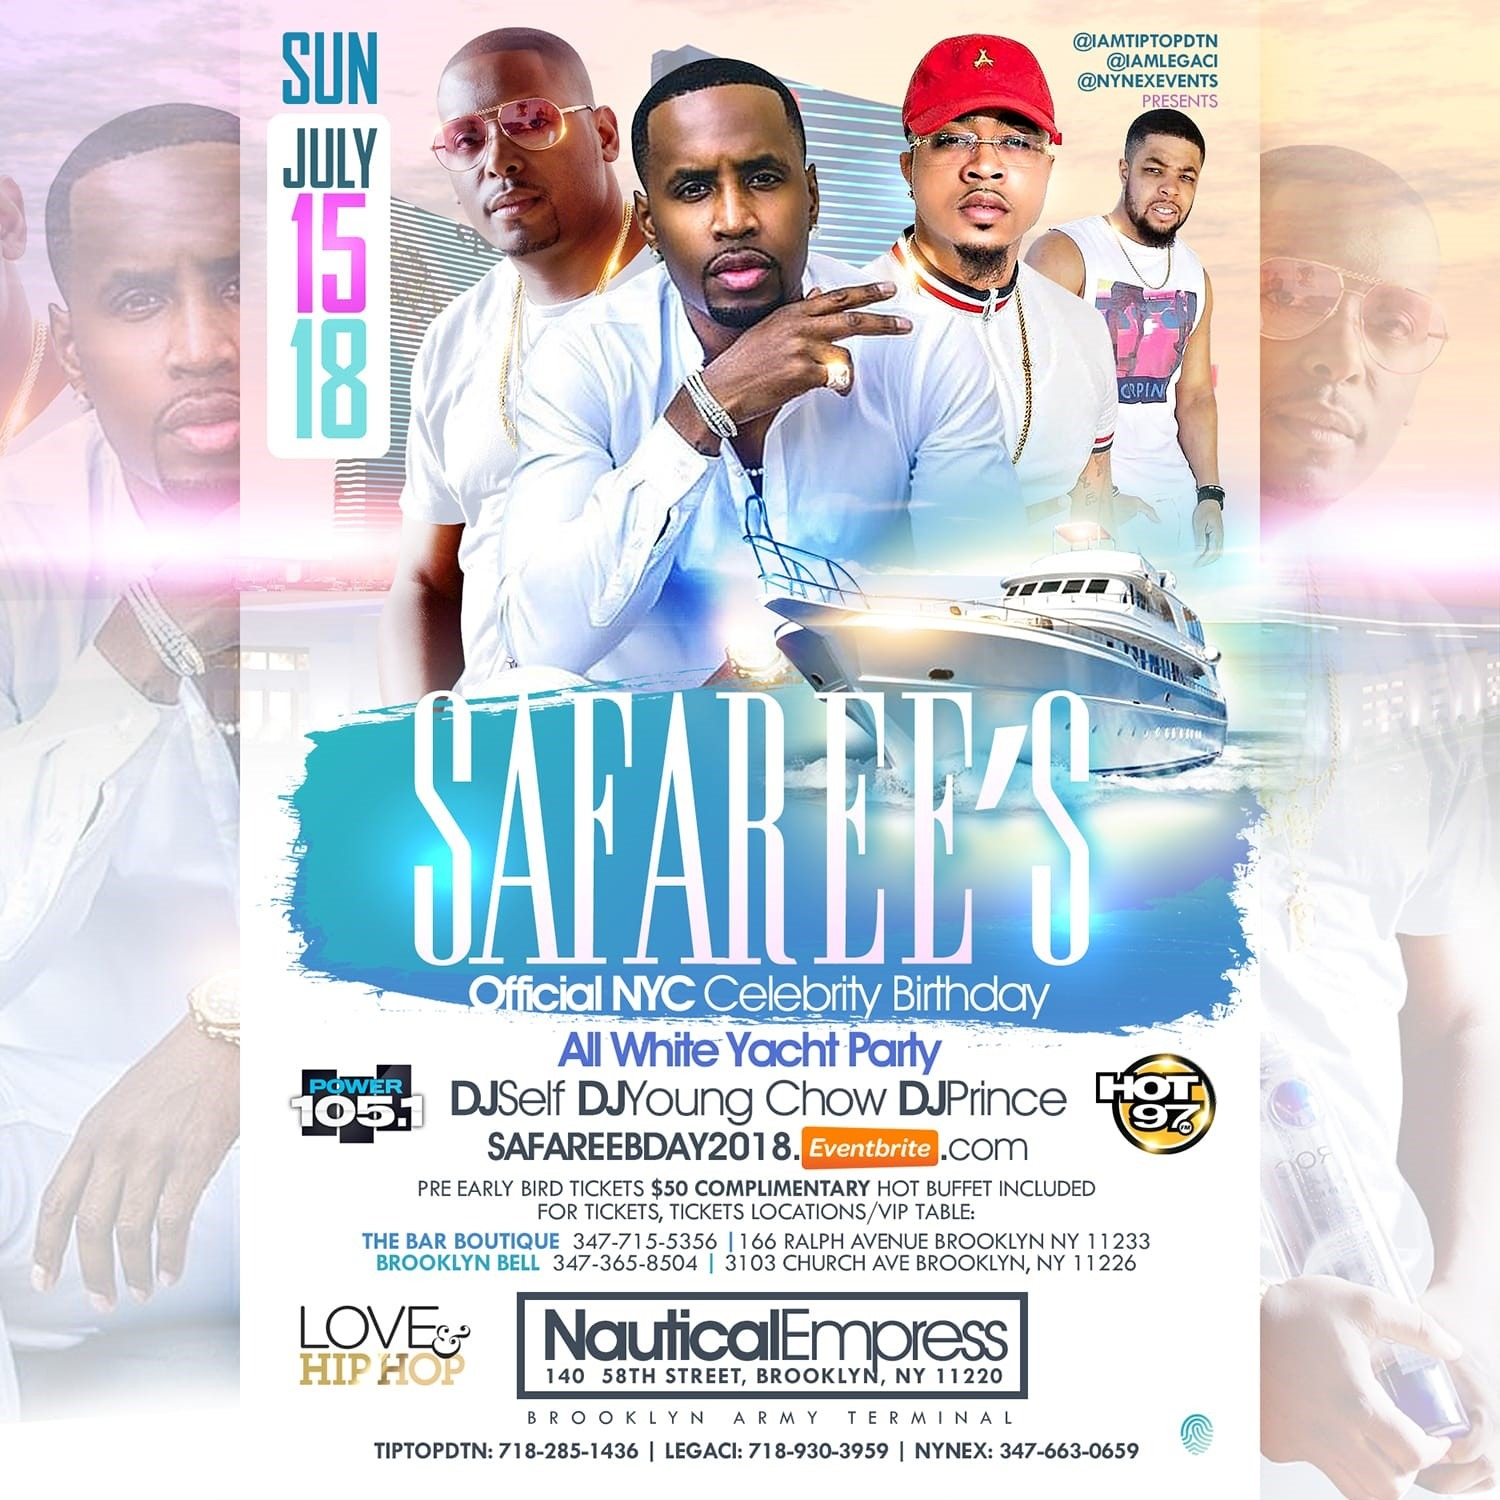 SAFAREE'S NYC CELEBRITY BIRTHDAY ALL WHITE YACHT PARTY